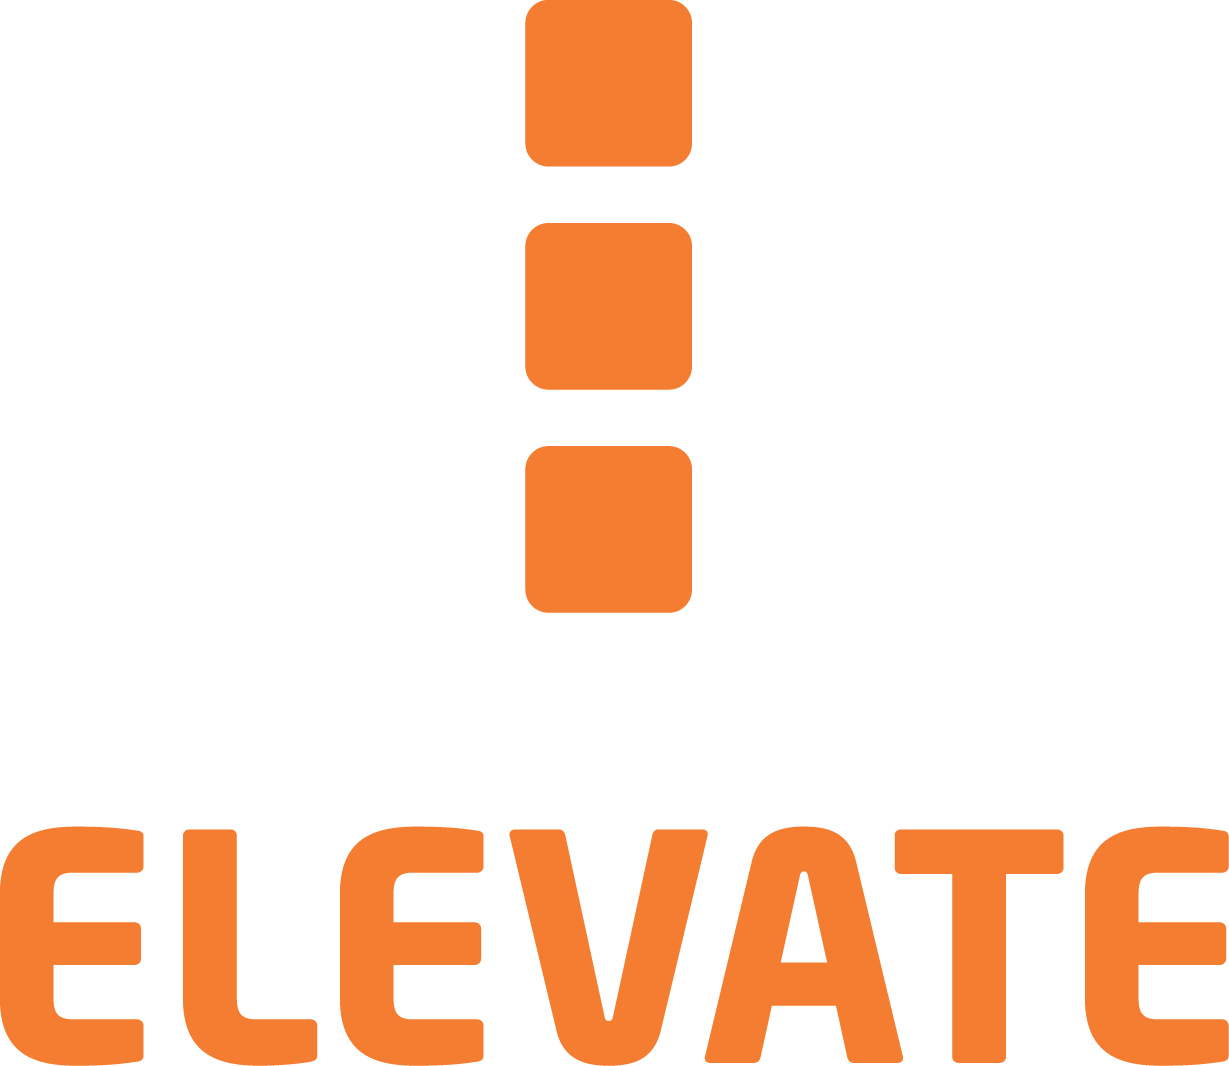 elevatelogo-regular.jpg